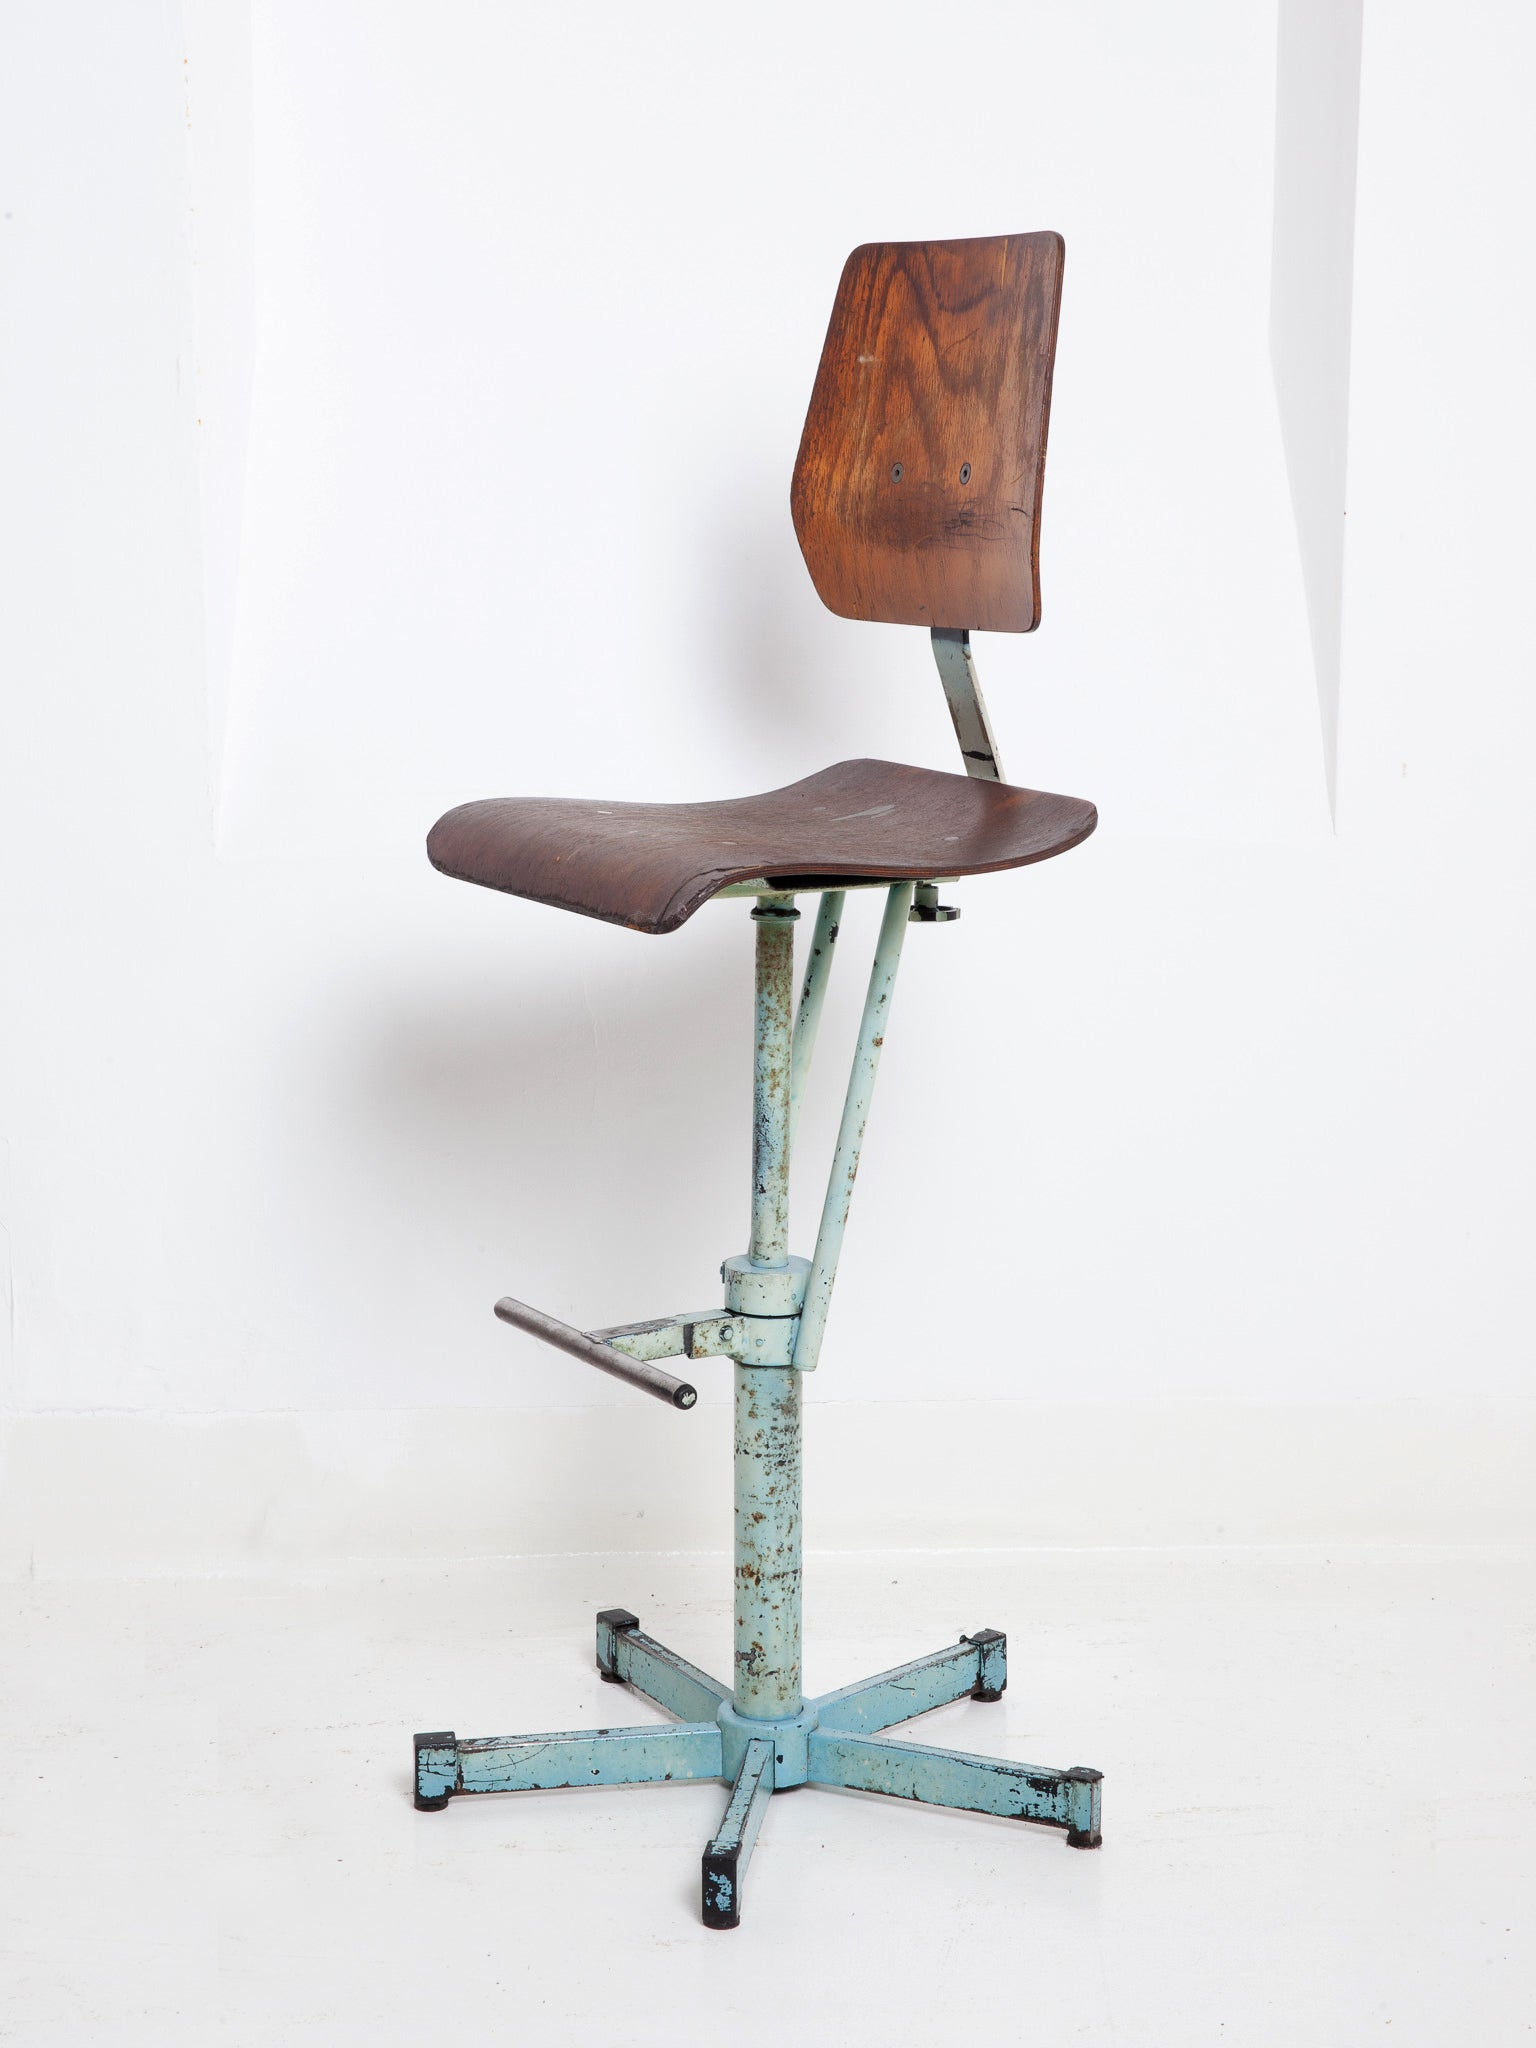 Tremendous New Stock Drew Pritchard Ltd Evergreenethics Interior Chair Design Evergreenethicsorg